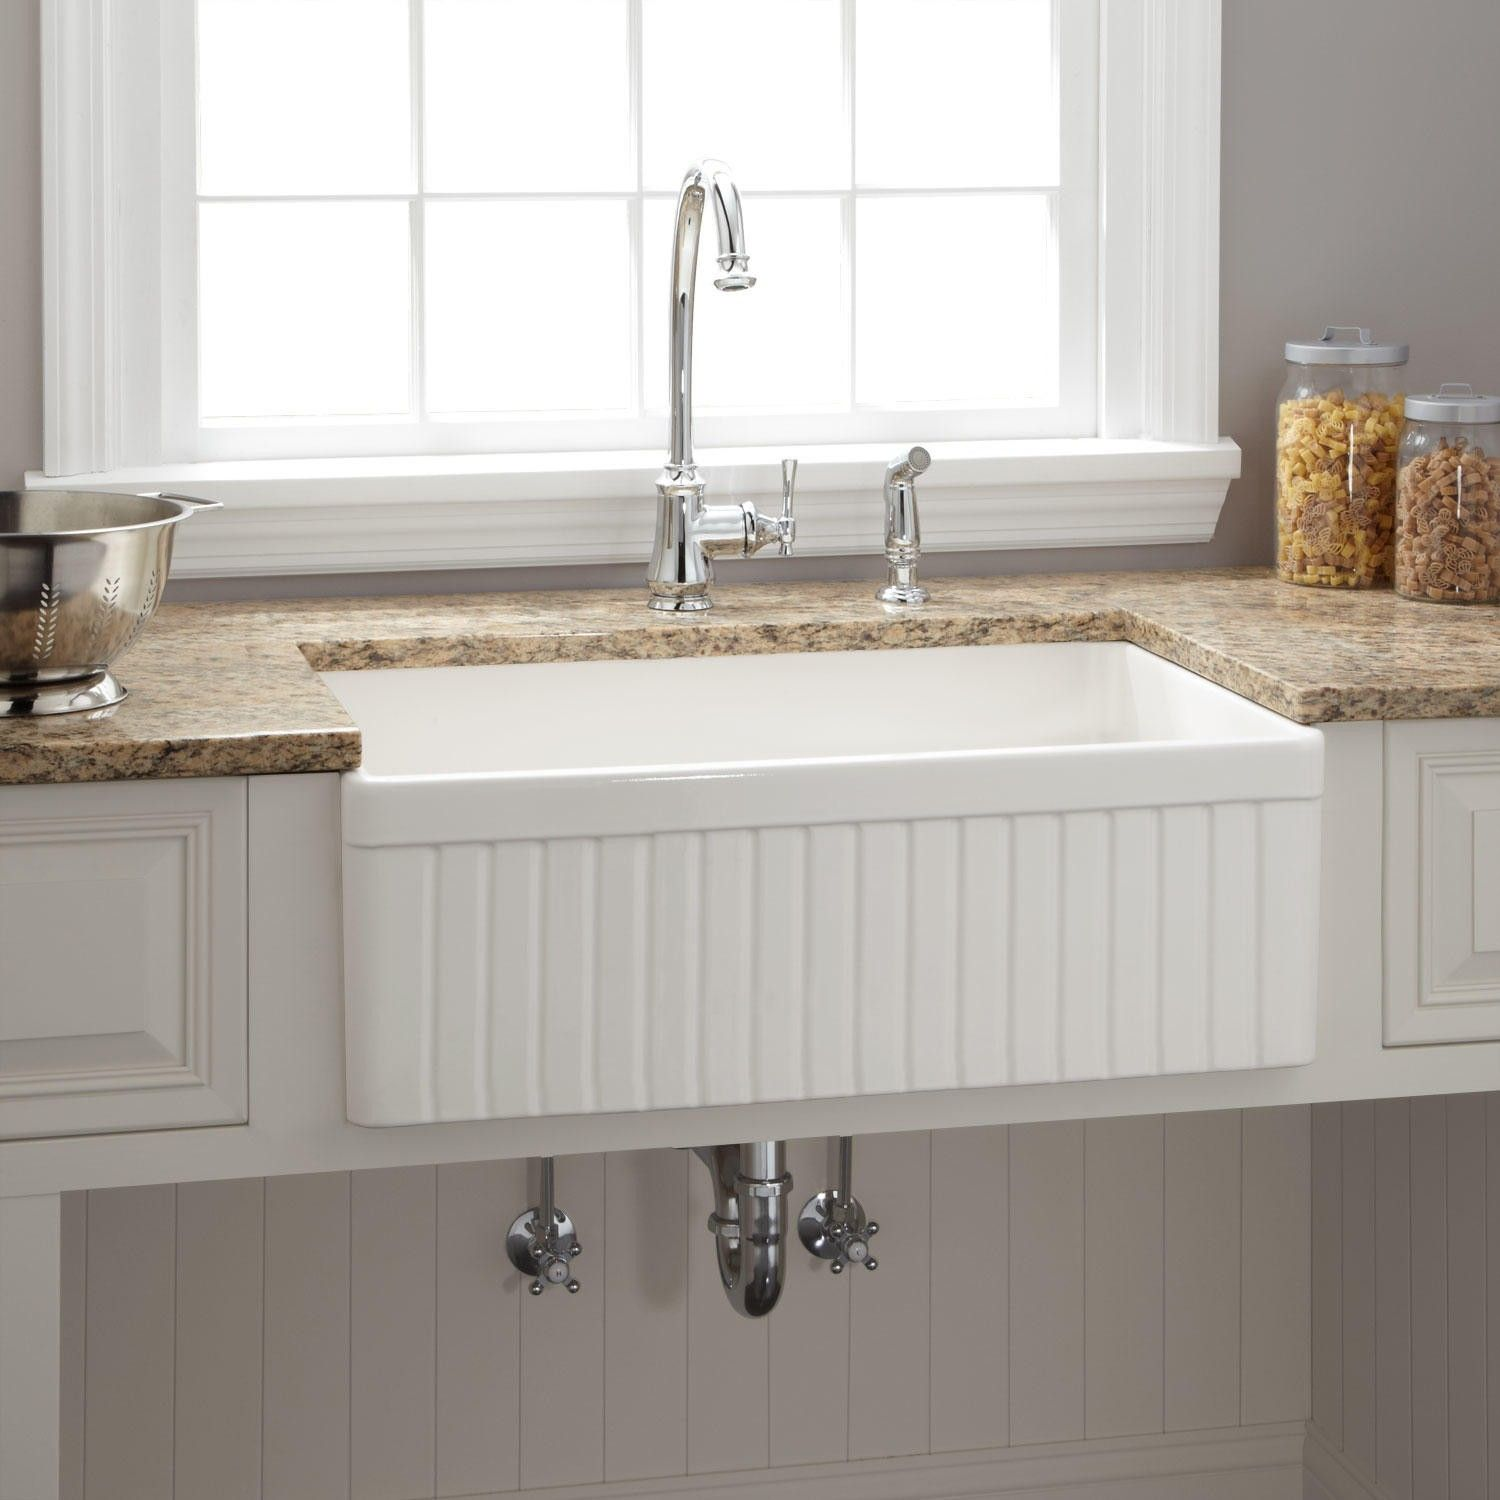 Baldwin Fireclay 30 Inch Fluted Apron Farmhouse Sink